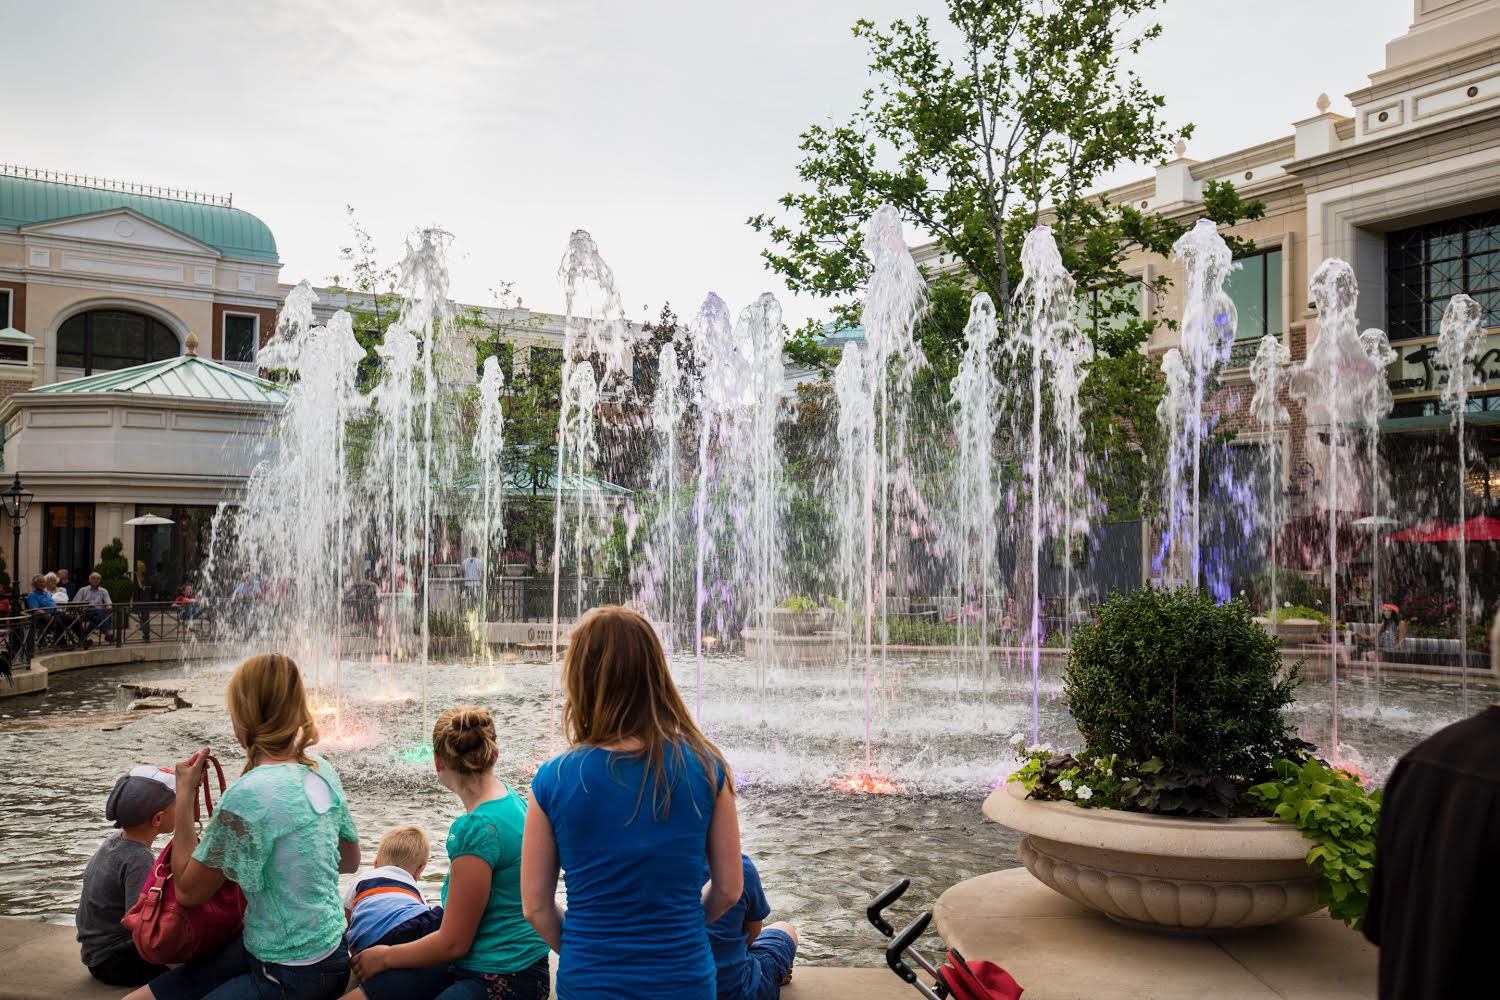 Water fountain in city square